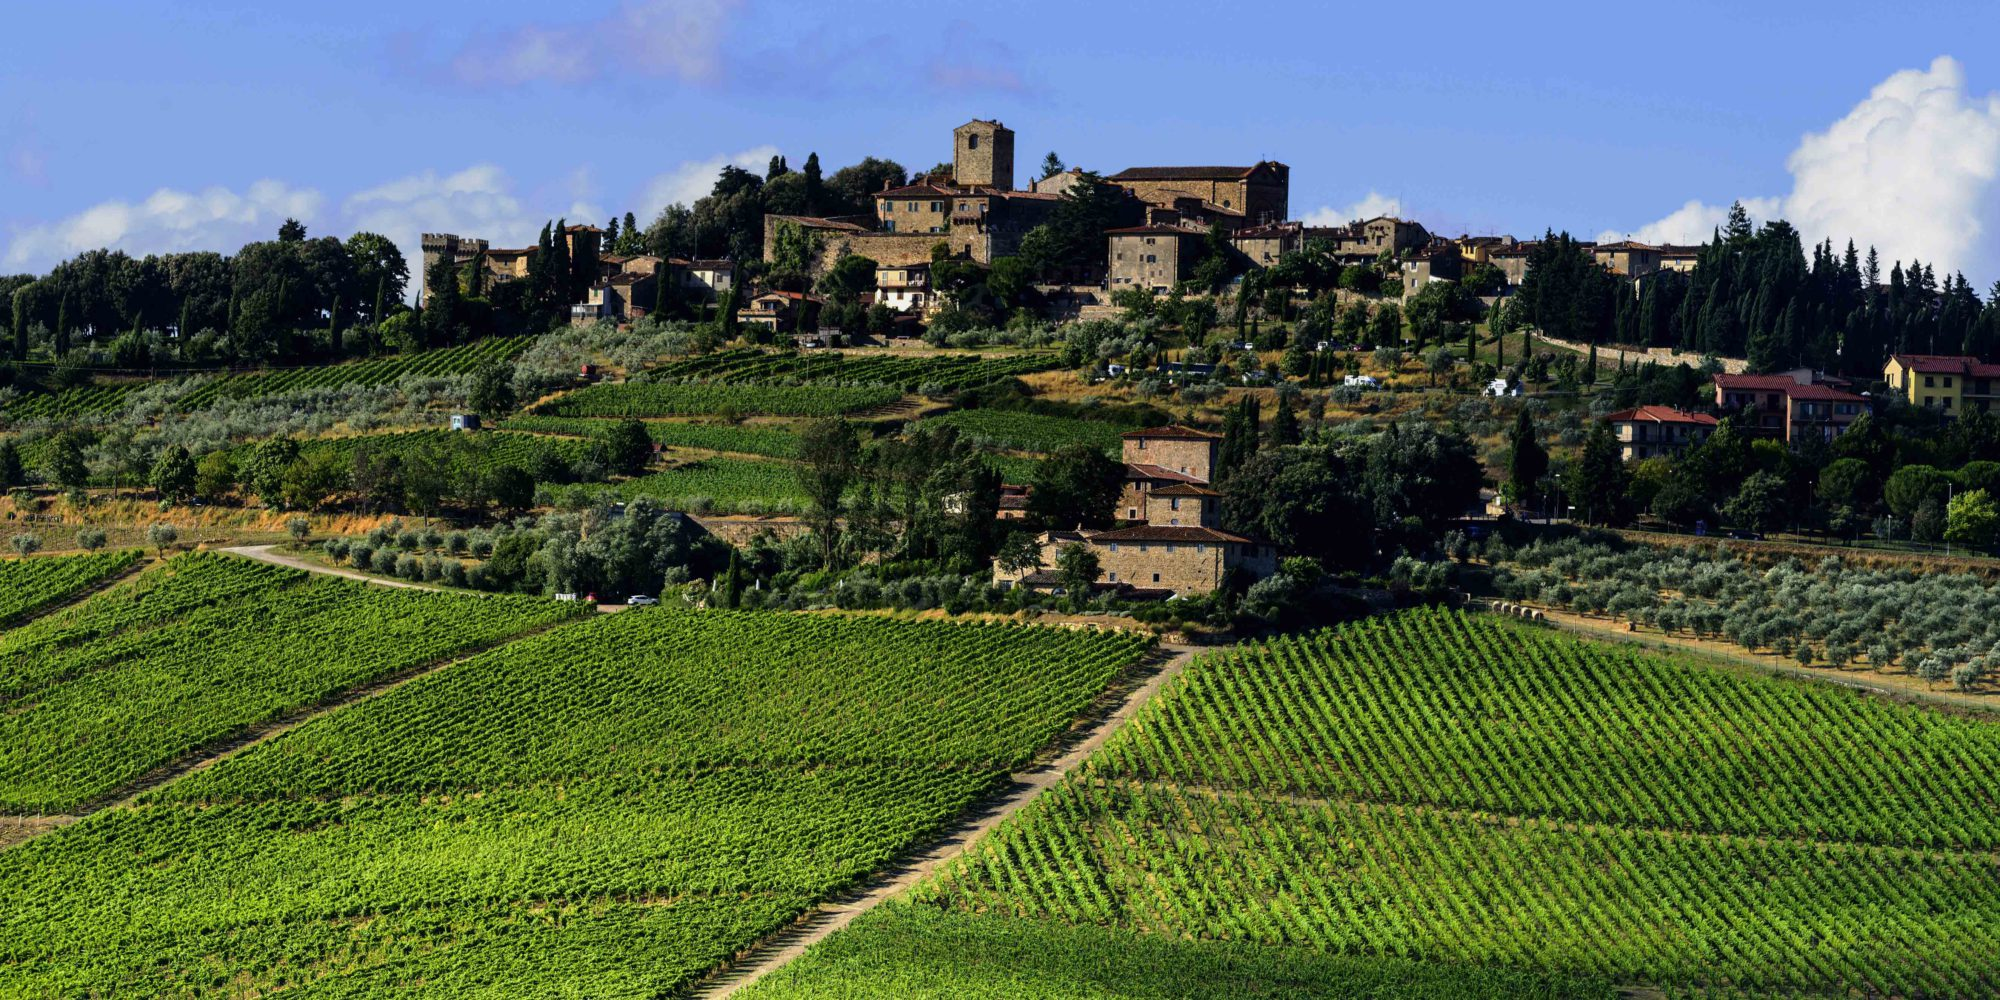 Tuscany Vespa tour will be an exiting day, excorded